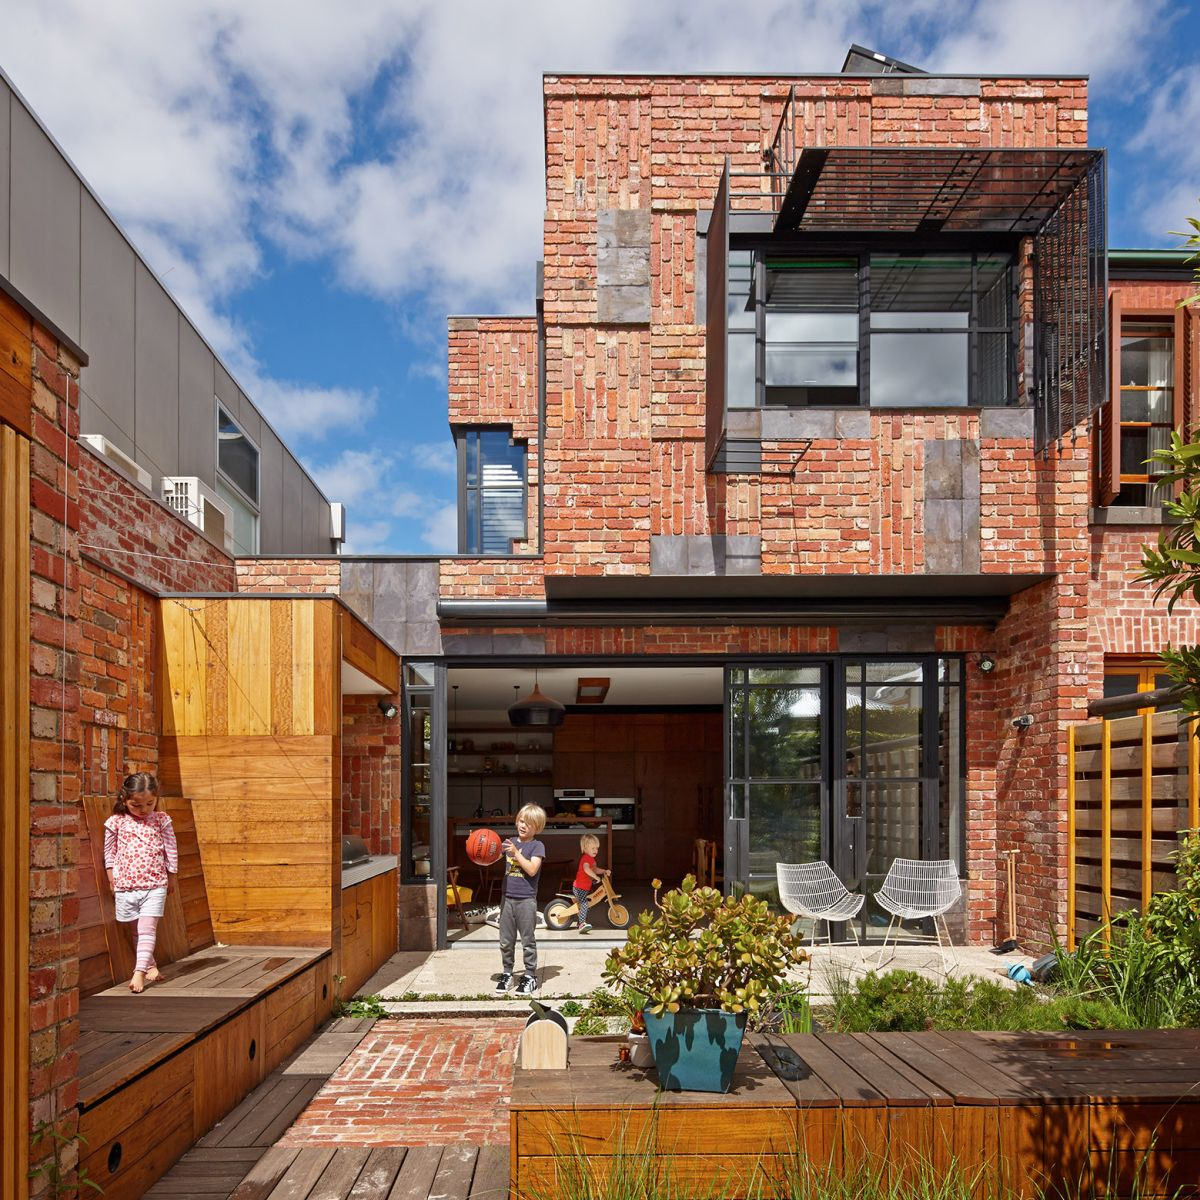 Best Kitchen Gallery: Brick Houses That Form A Bridge Between Past And Present of Modern Brick Homes  on rachelxblog.com